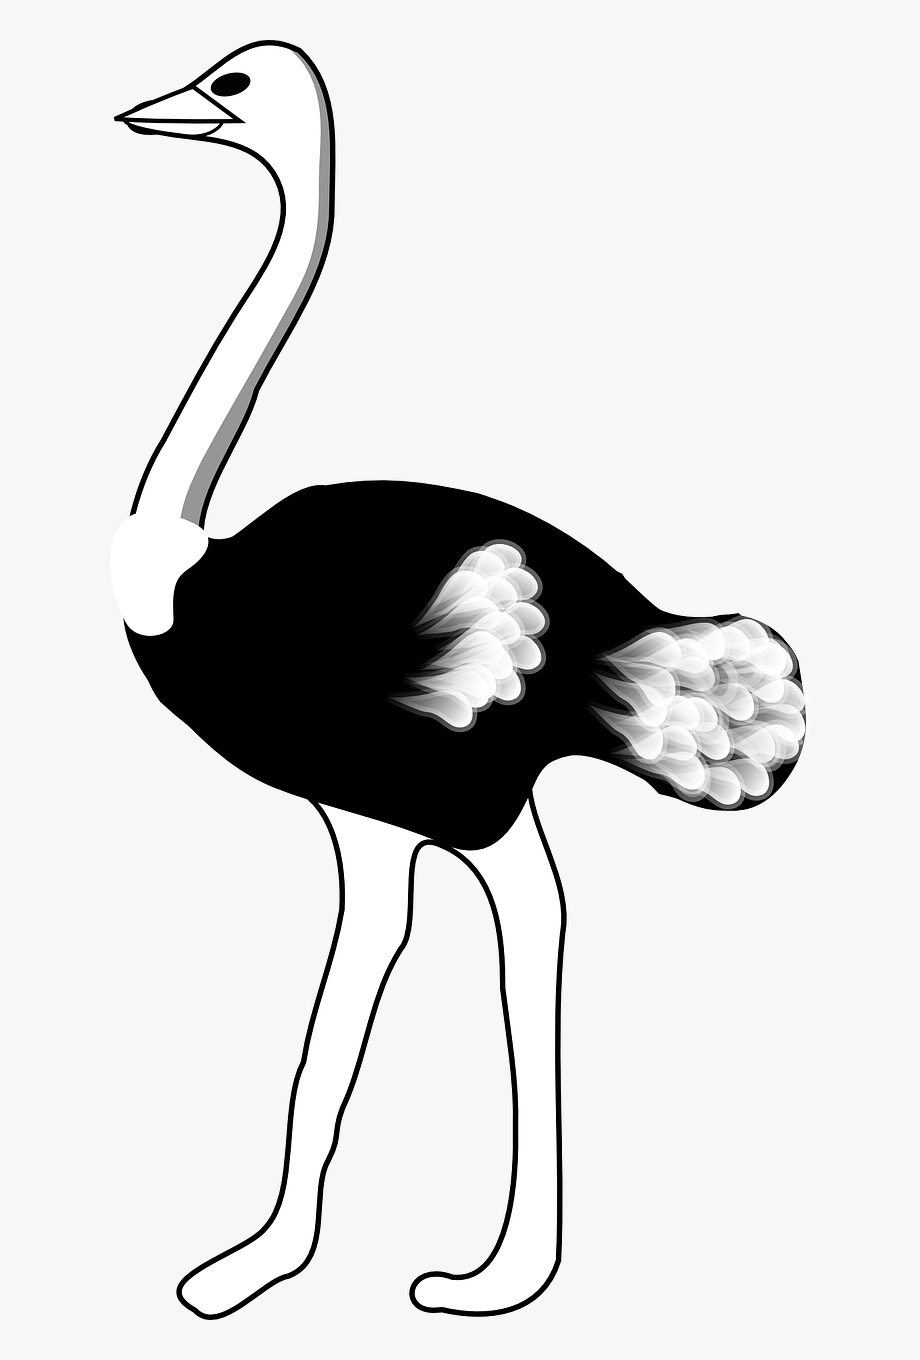 Ostrich Black And White #860658.